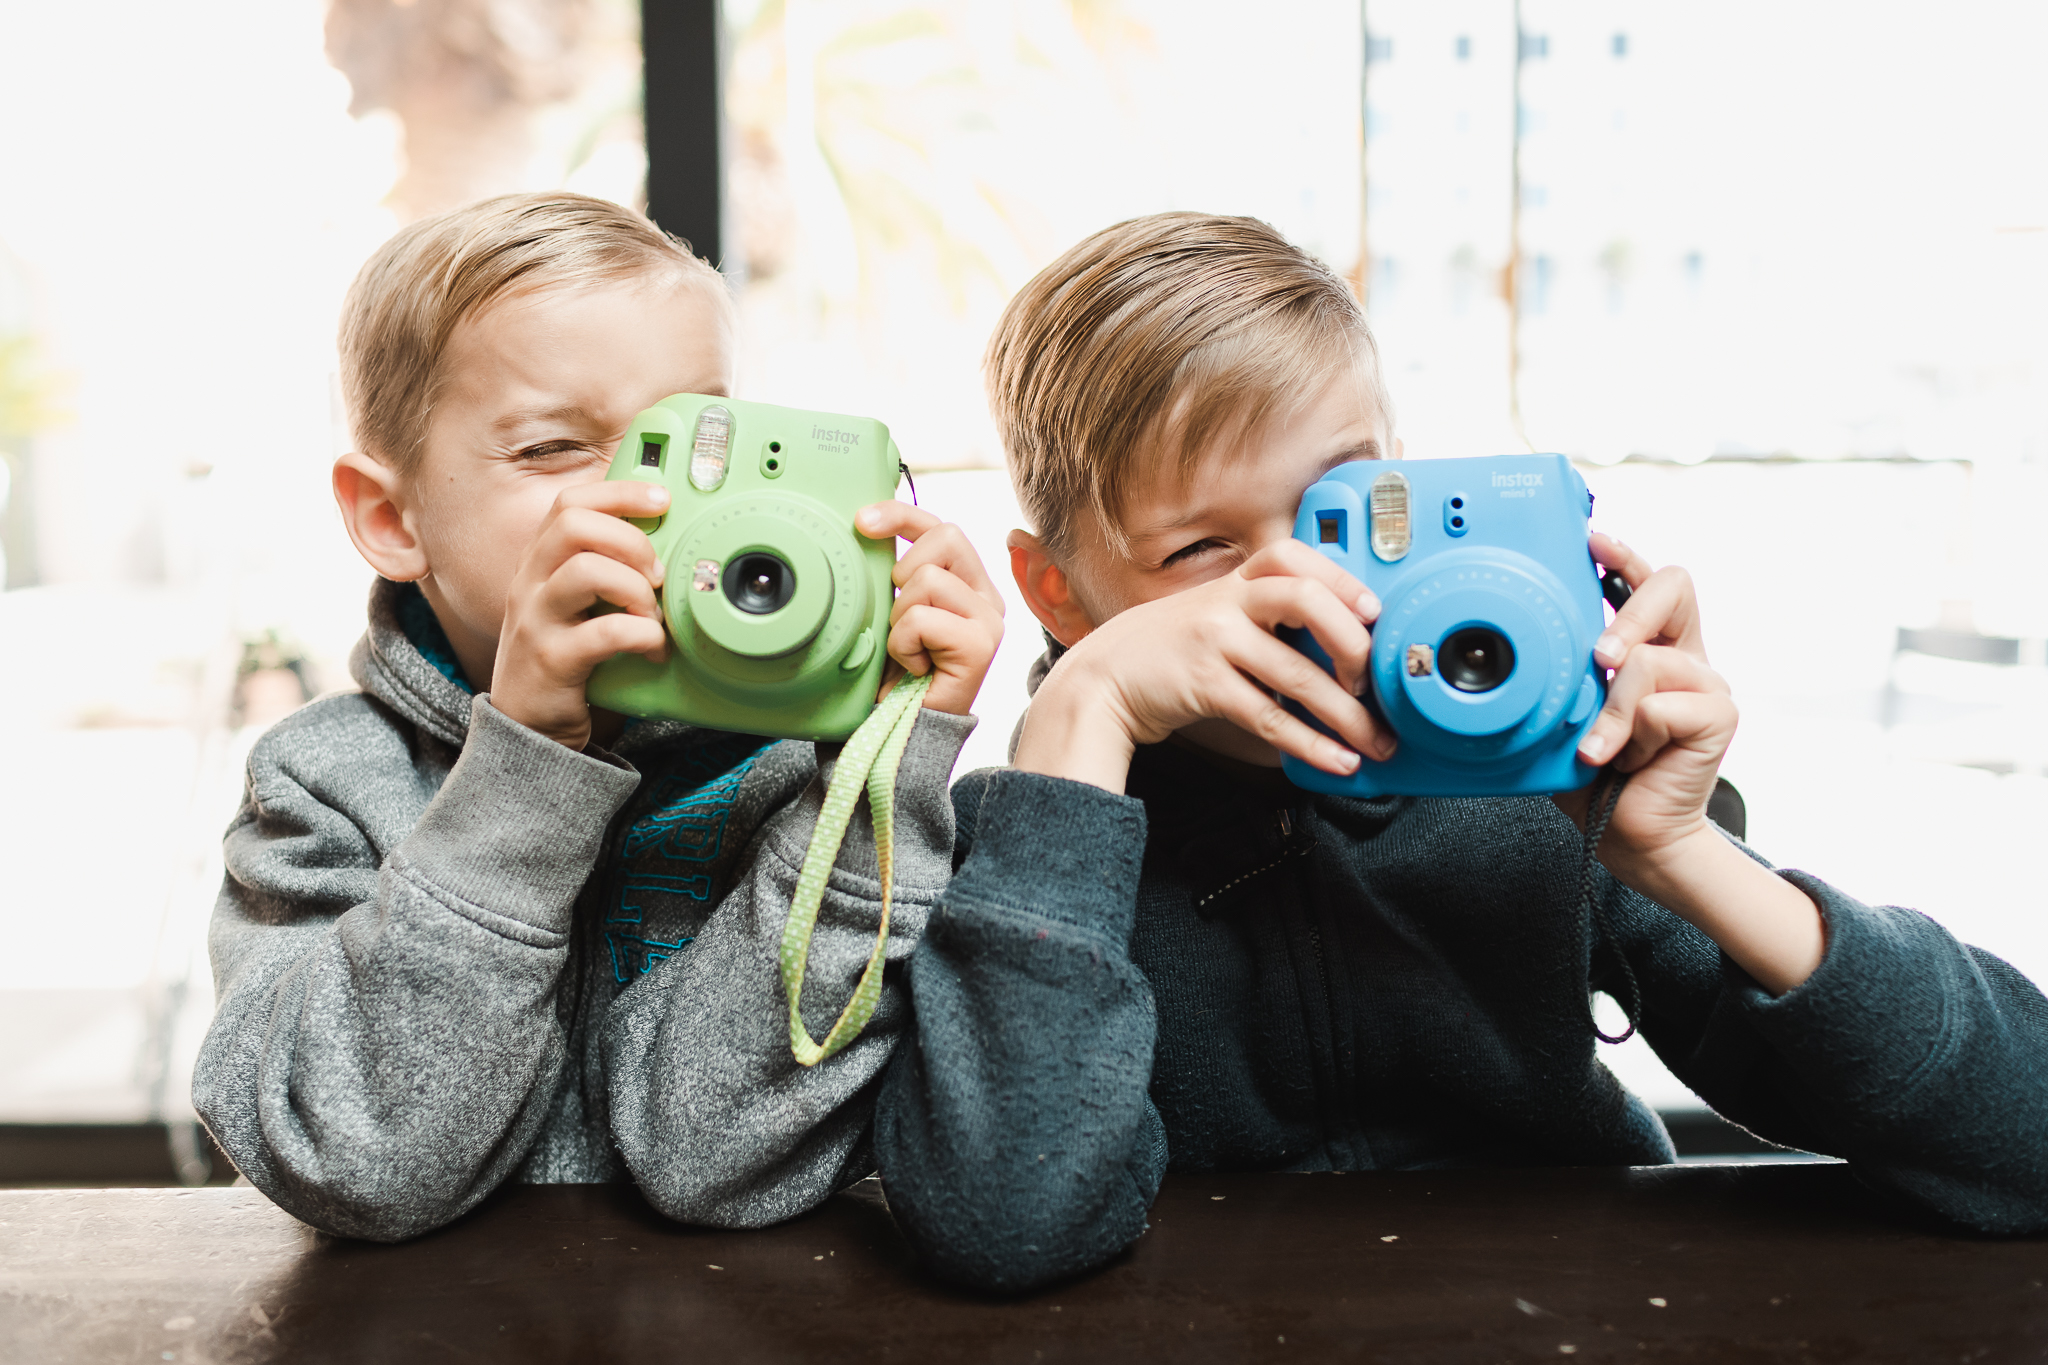 TWO BOYS HOLDING FUJI INSTAX CAMERAS UP READY TO TAKE A PHOTO